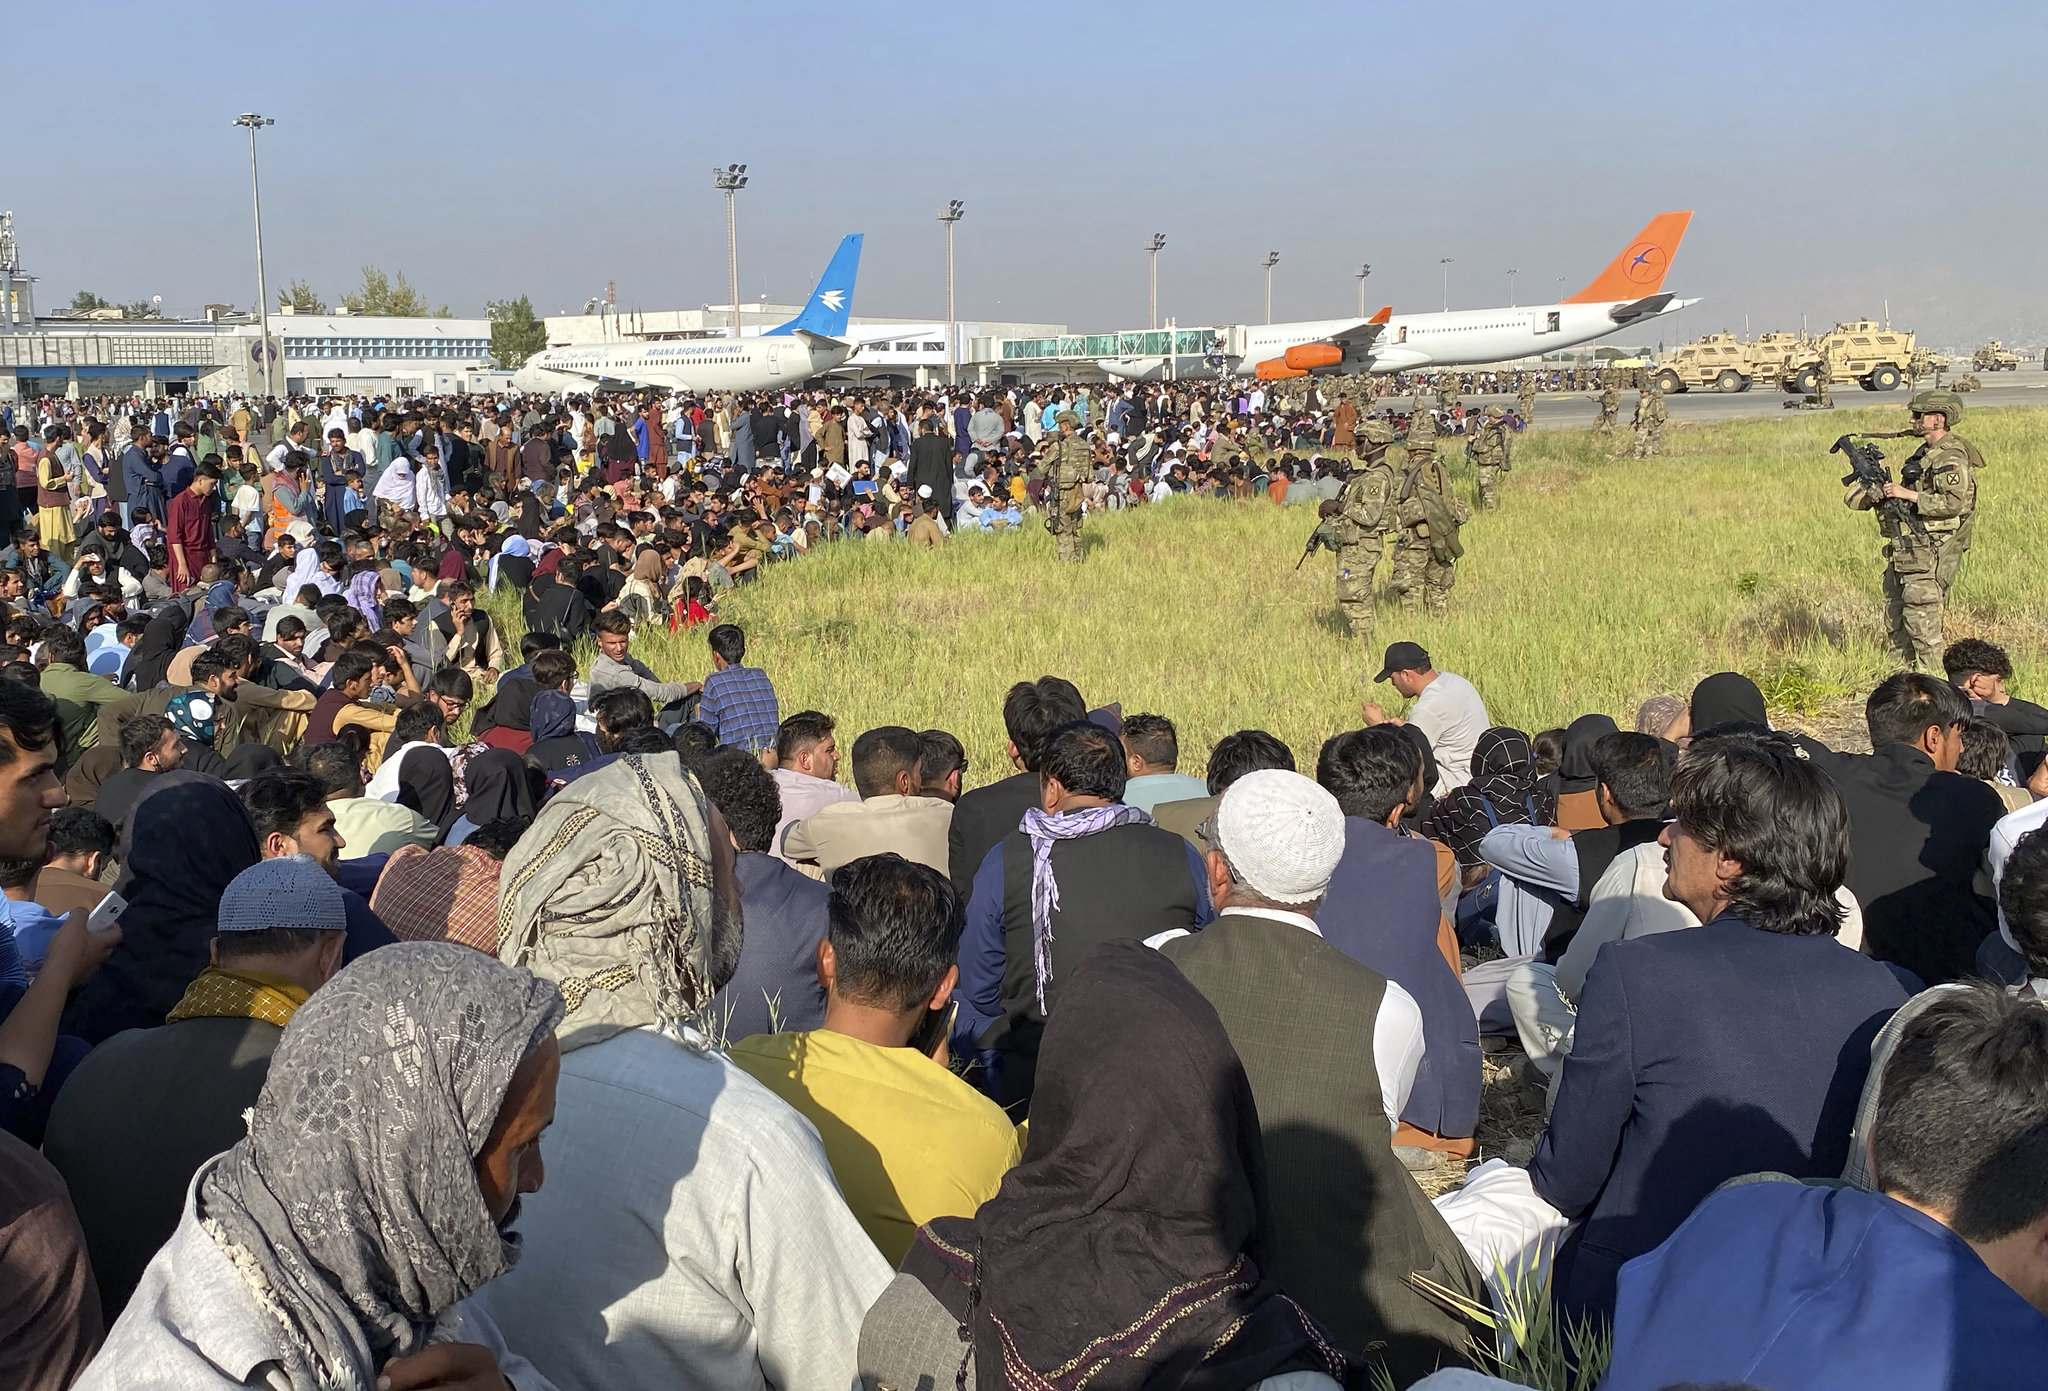 At the Kabul airport, thousands of Afghans are desperate to leave as the Taliban encircles the city.</p></p>